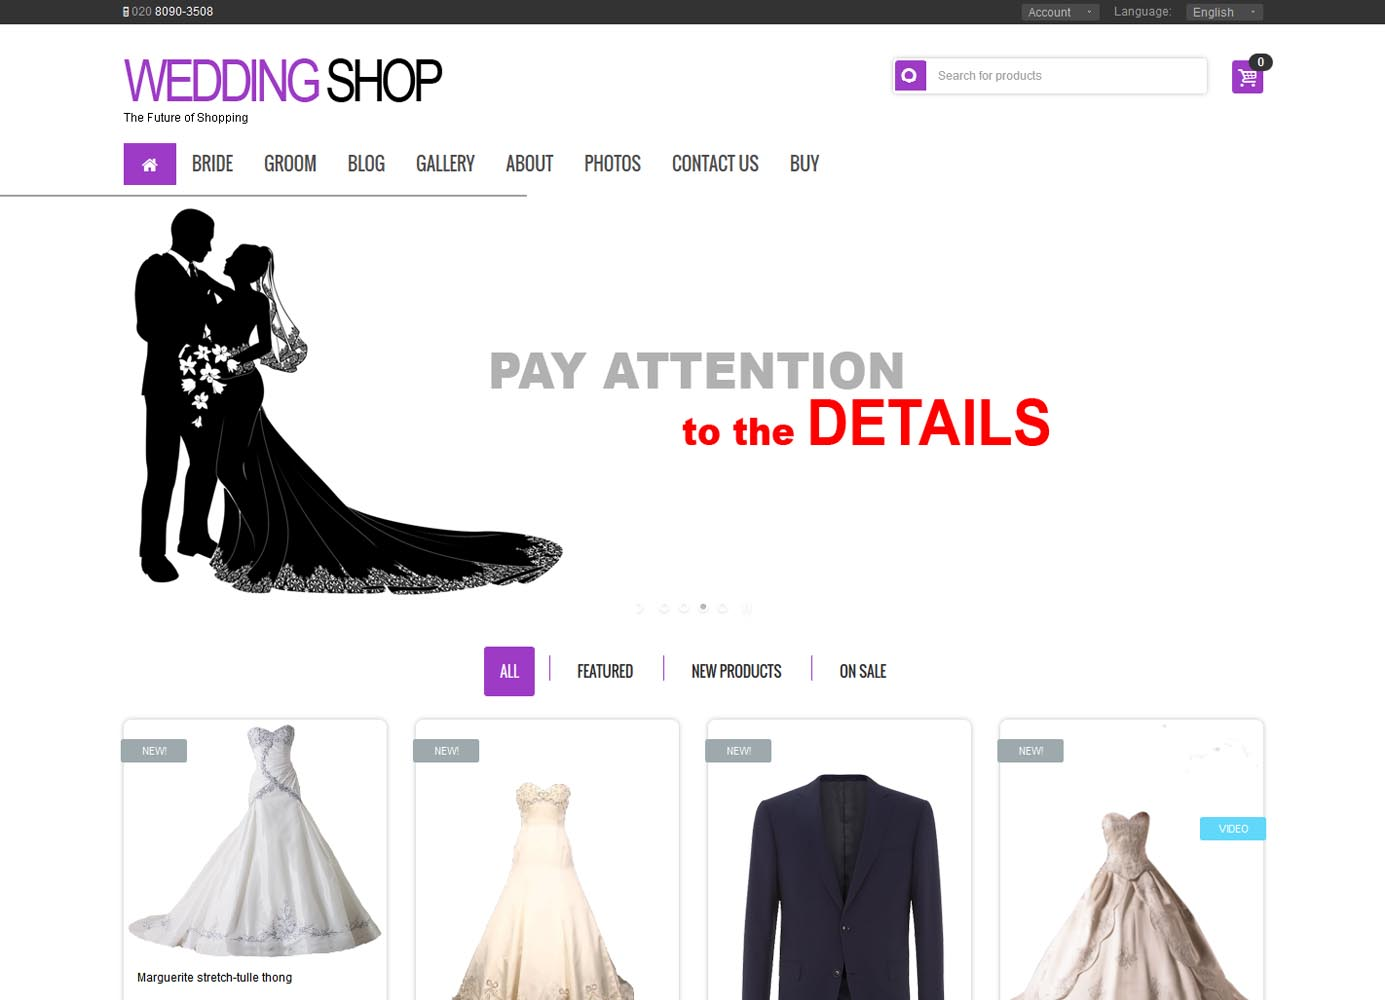 Wedding-Shop-Home